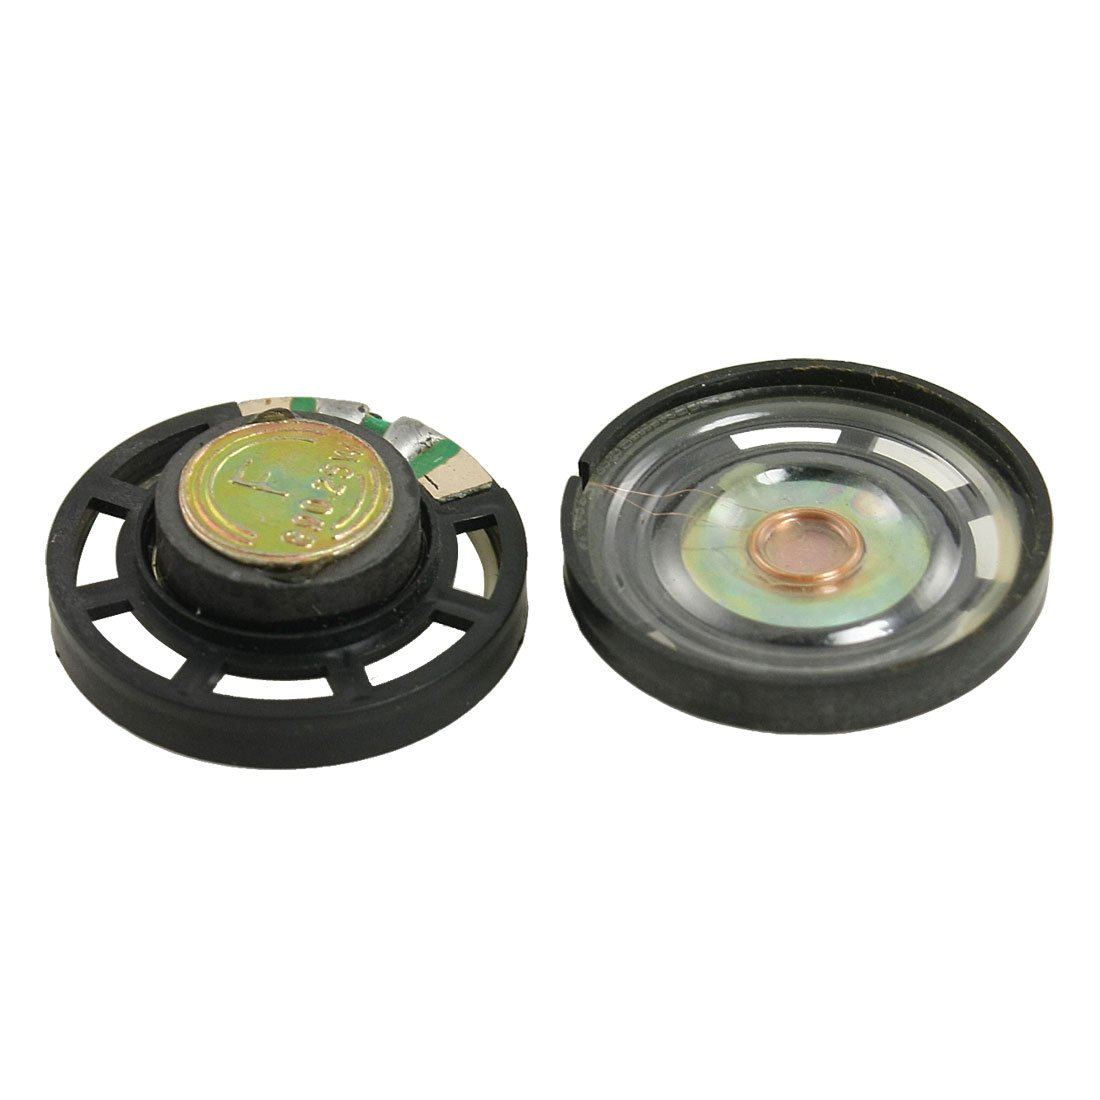 External Magnetic Type Round Plastic Shell Speaker 8 Ohm 0.25W 2 Pcs